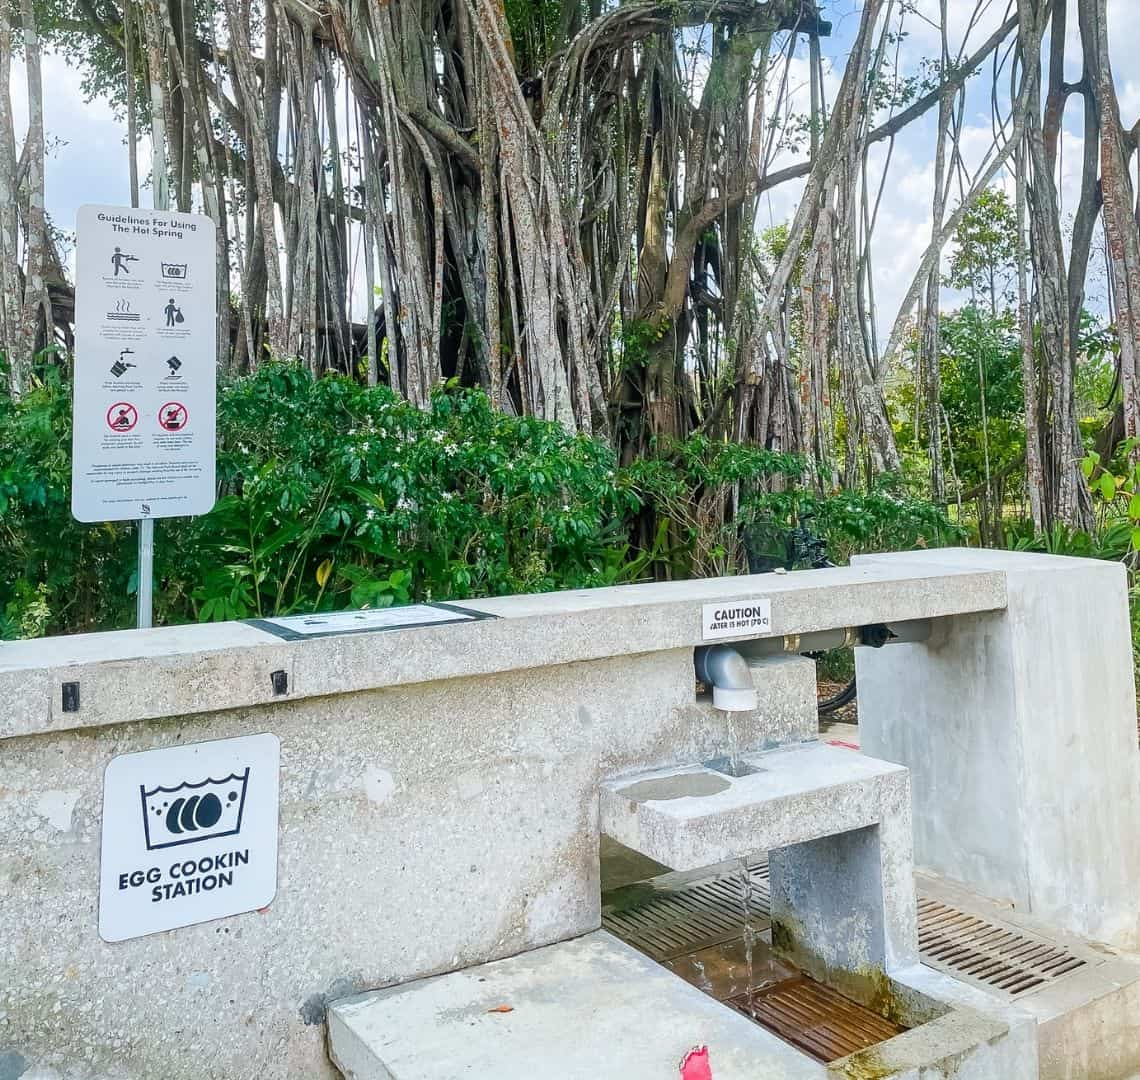 The egg cooking station in Sembawang is a series of table top concrete slabs with taps for the hot water. There are several instructions on signs. Behind the wall there is a banyan tree and some green plants